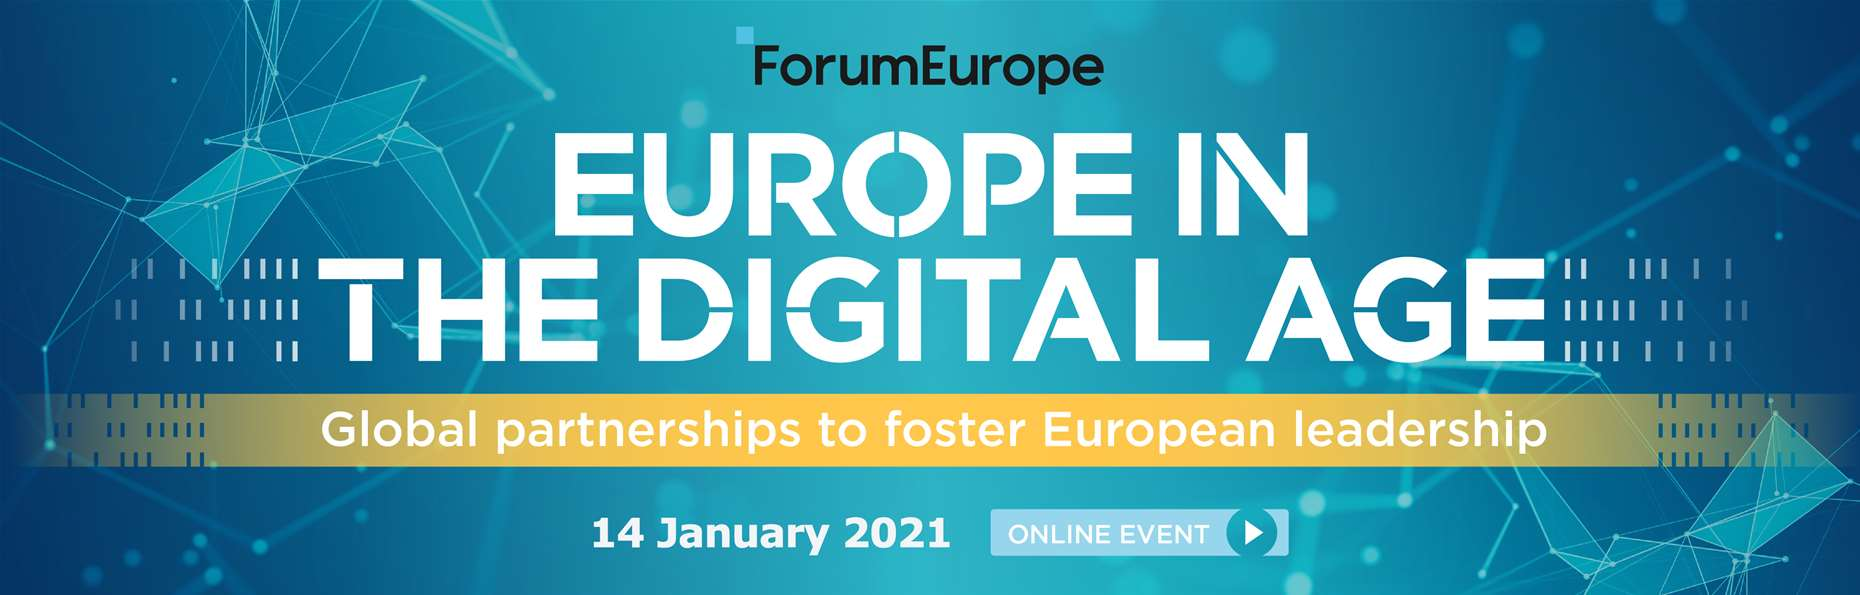 Europe in the Digital Age